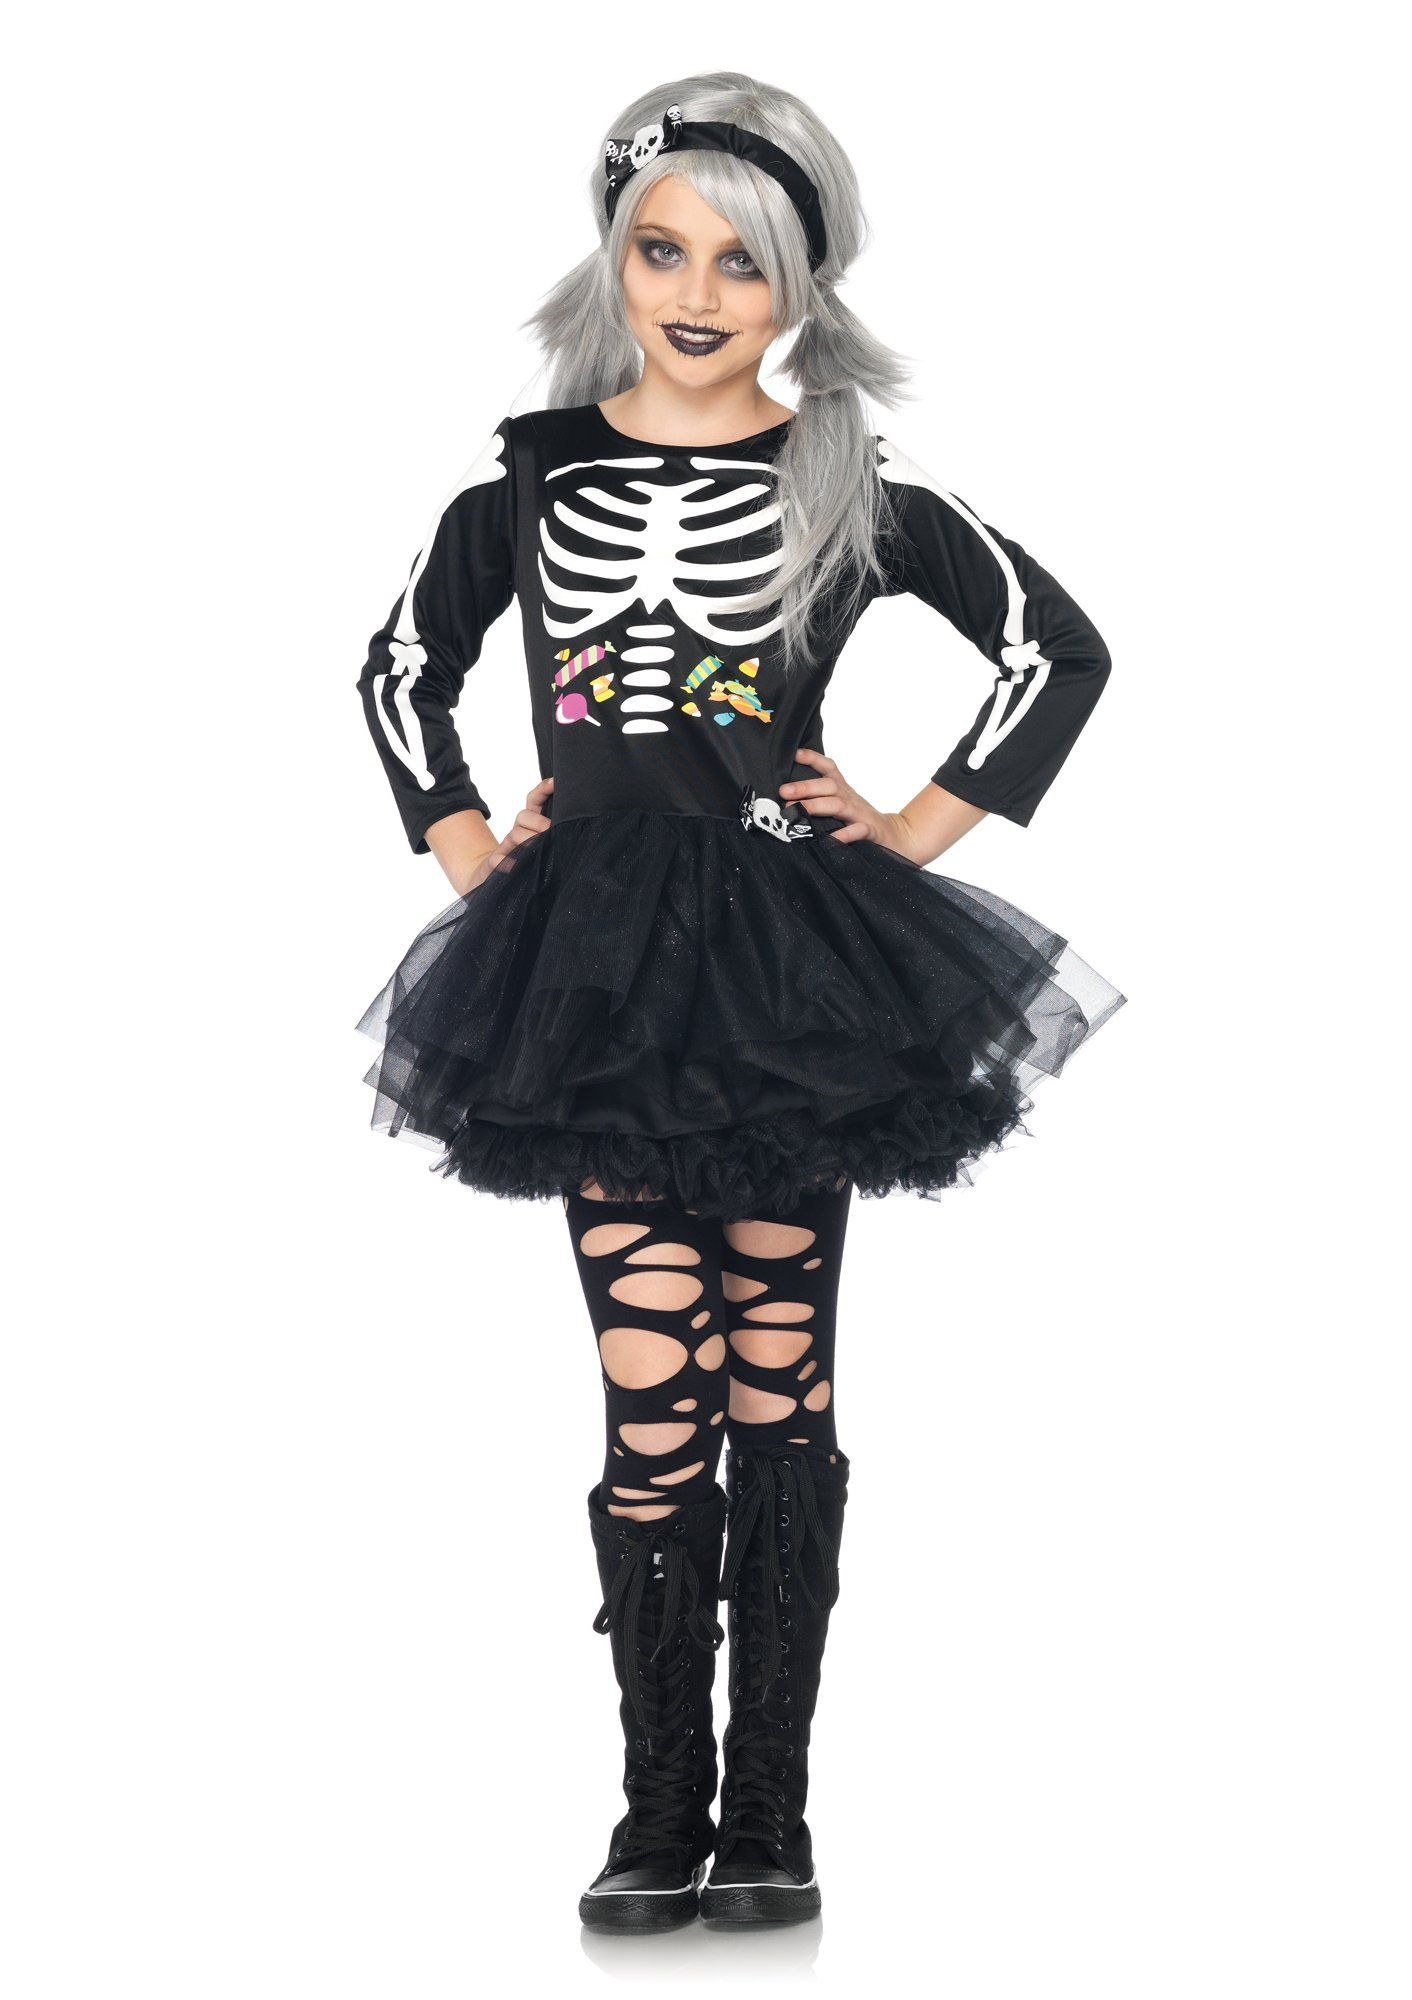 Leg Avenue Costumes 2Pc.Scary Skeleton Petticoat Dress